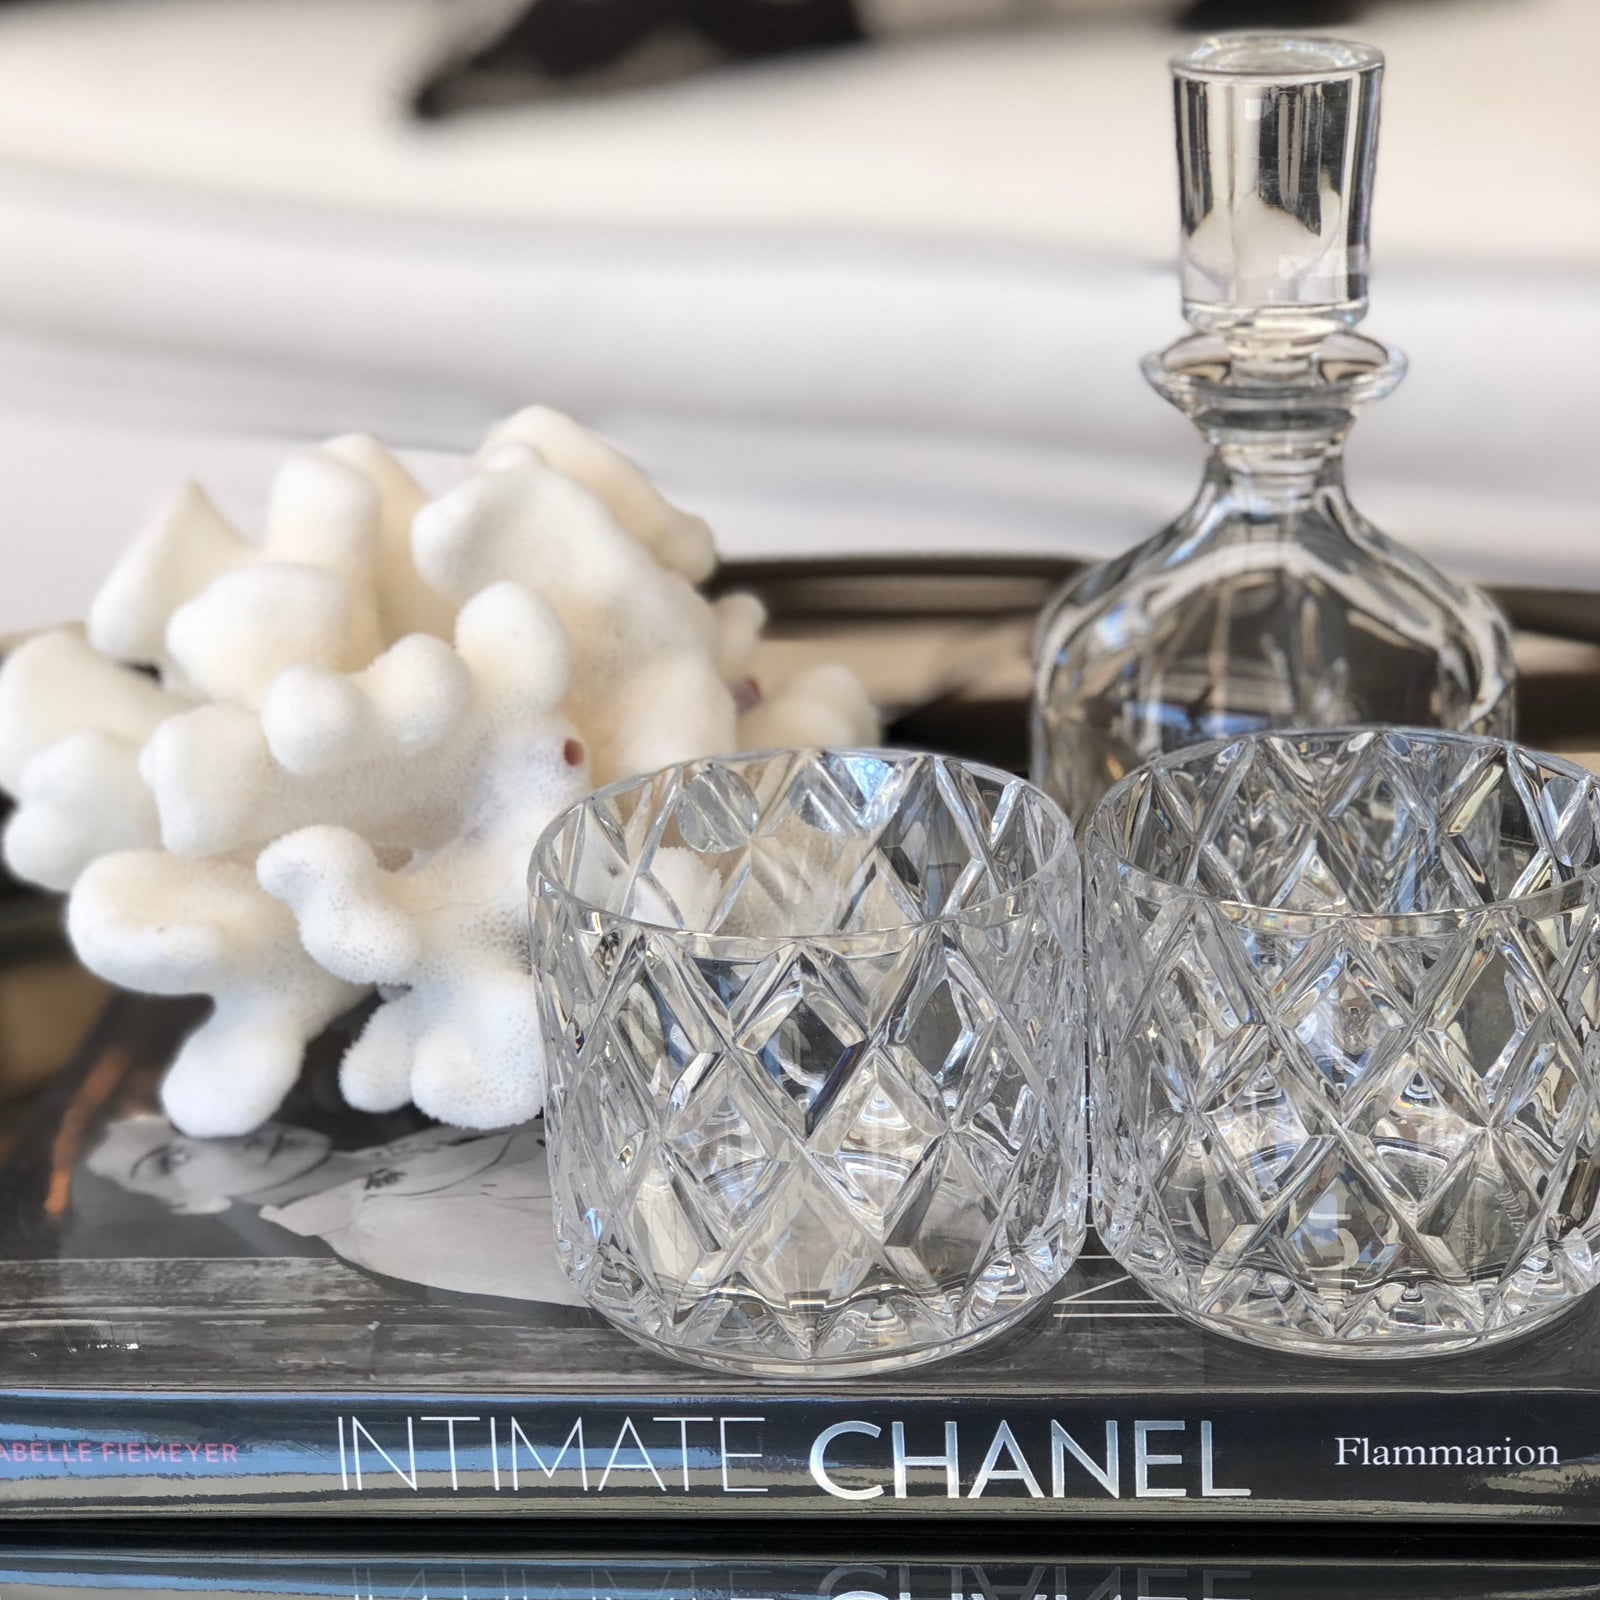 Intimate Chanel Book